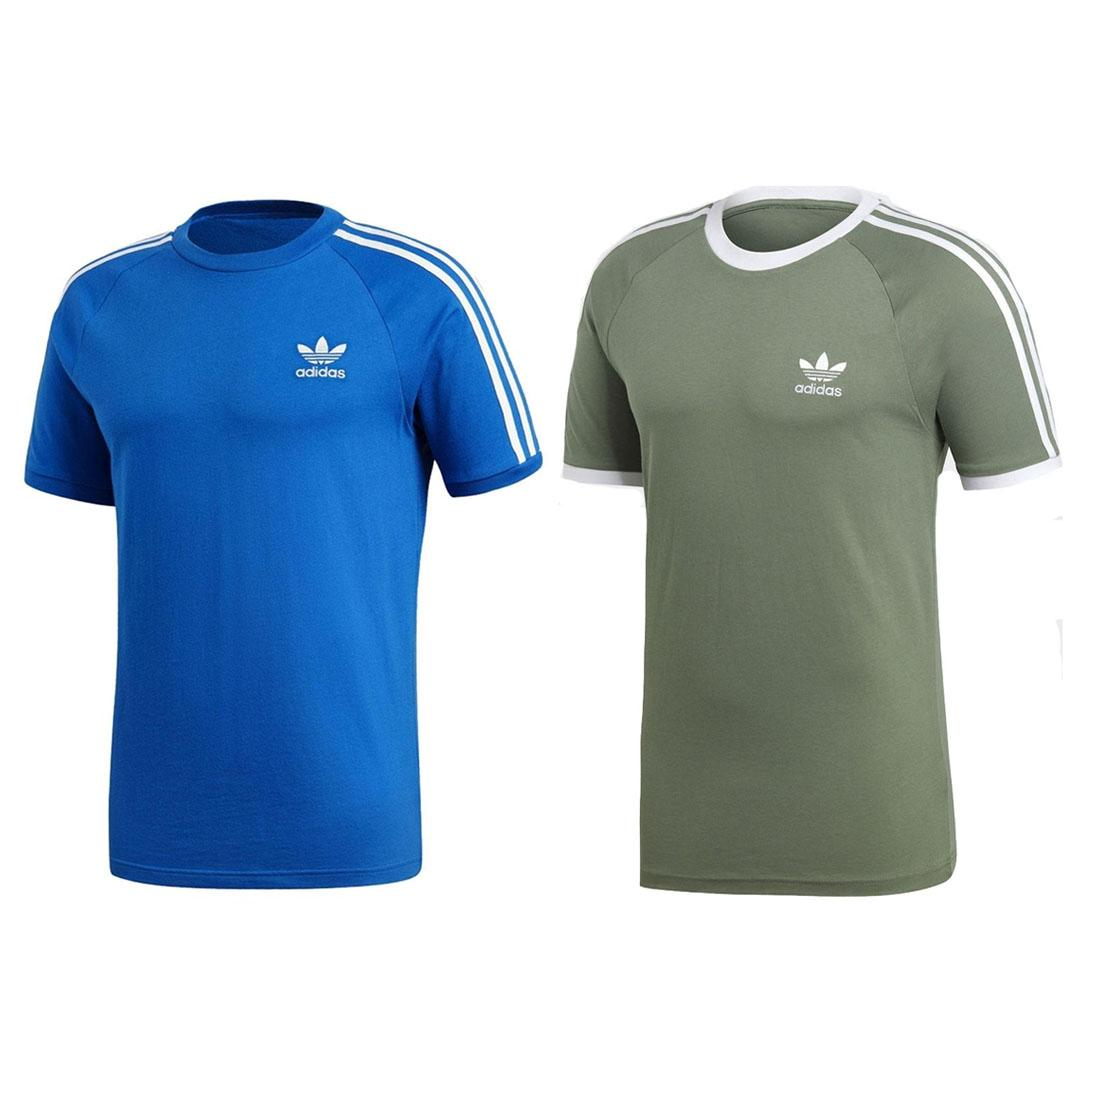 Details about adidas originals California Tee Mens Blue Green 3 Stripe Sports Gym T Shirt